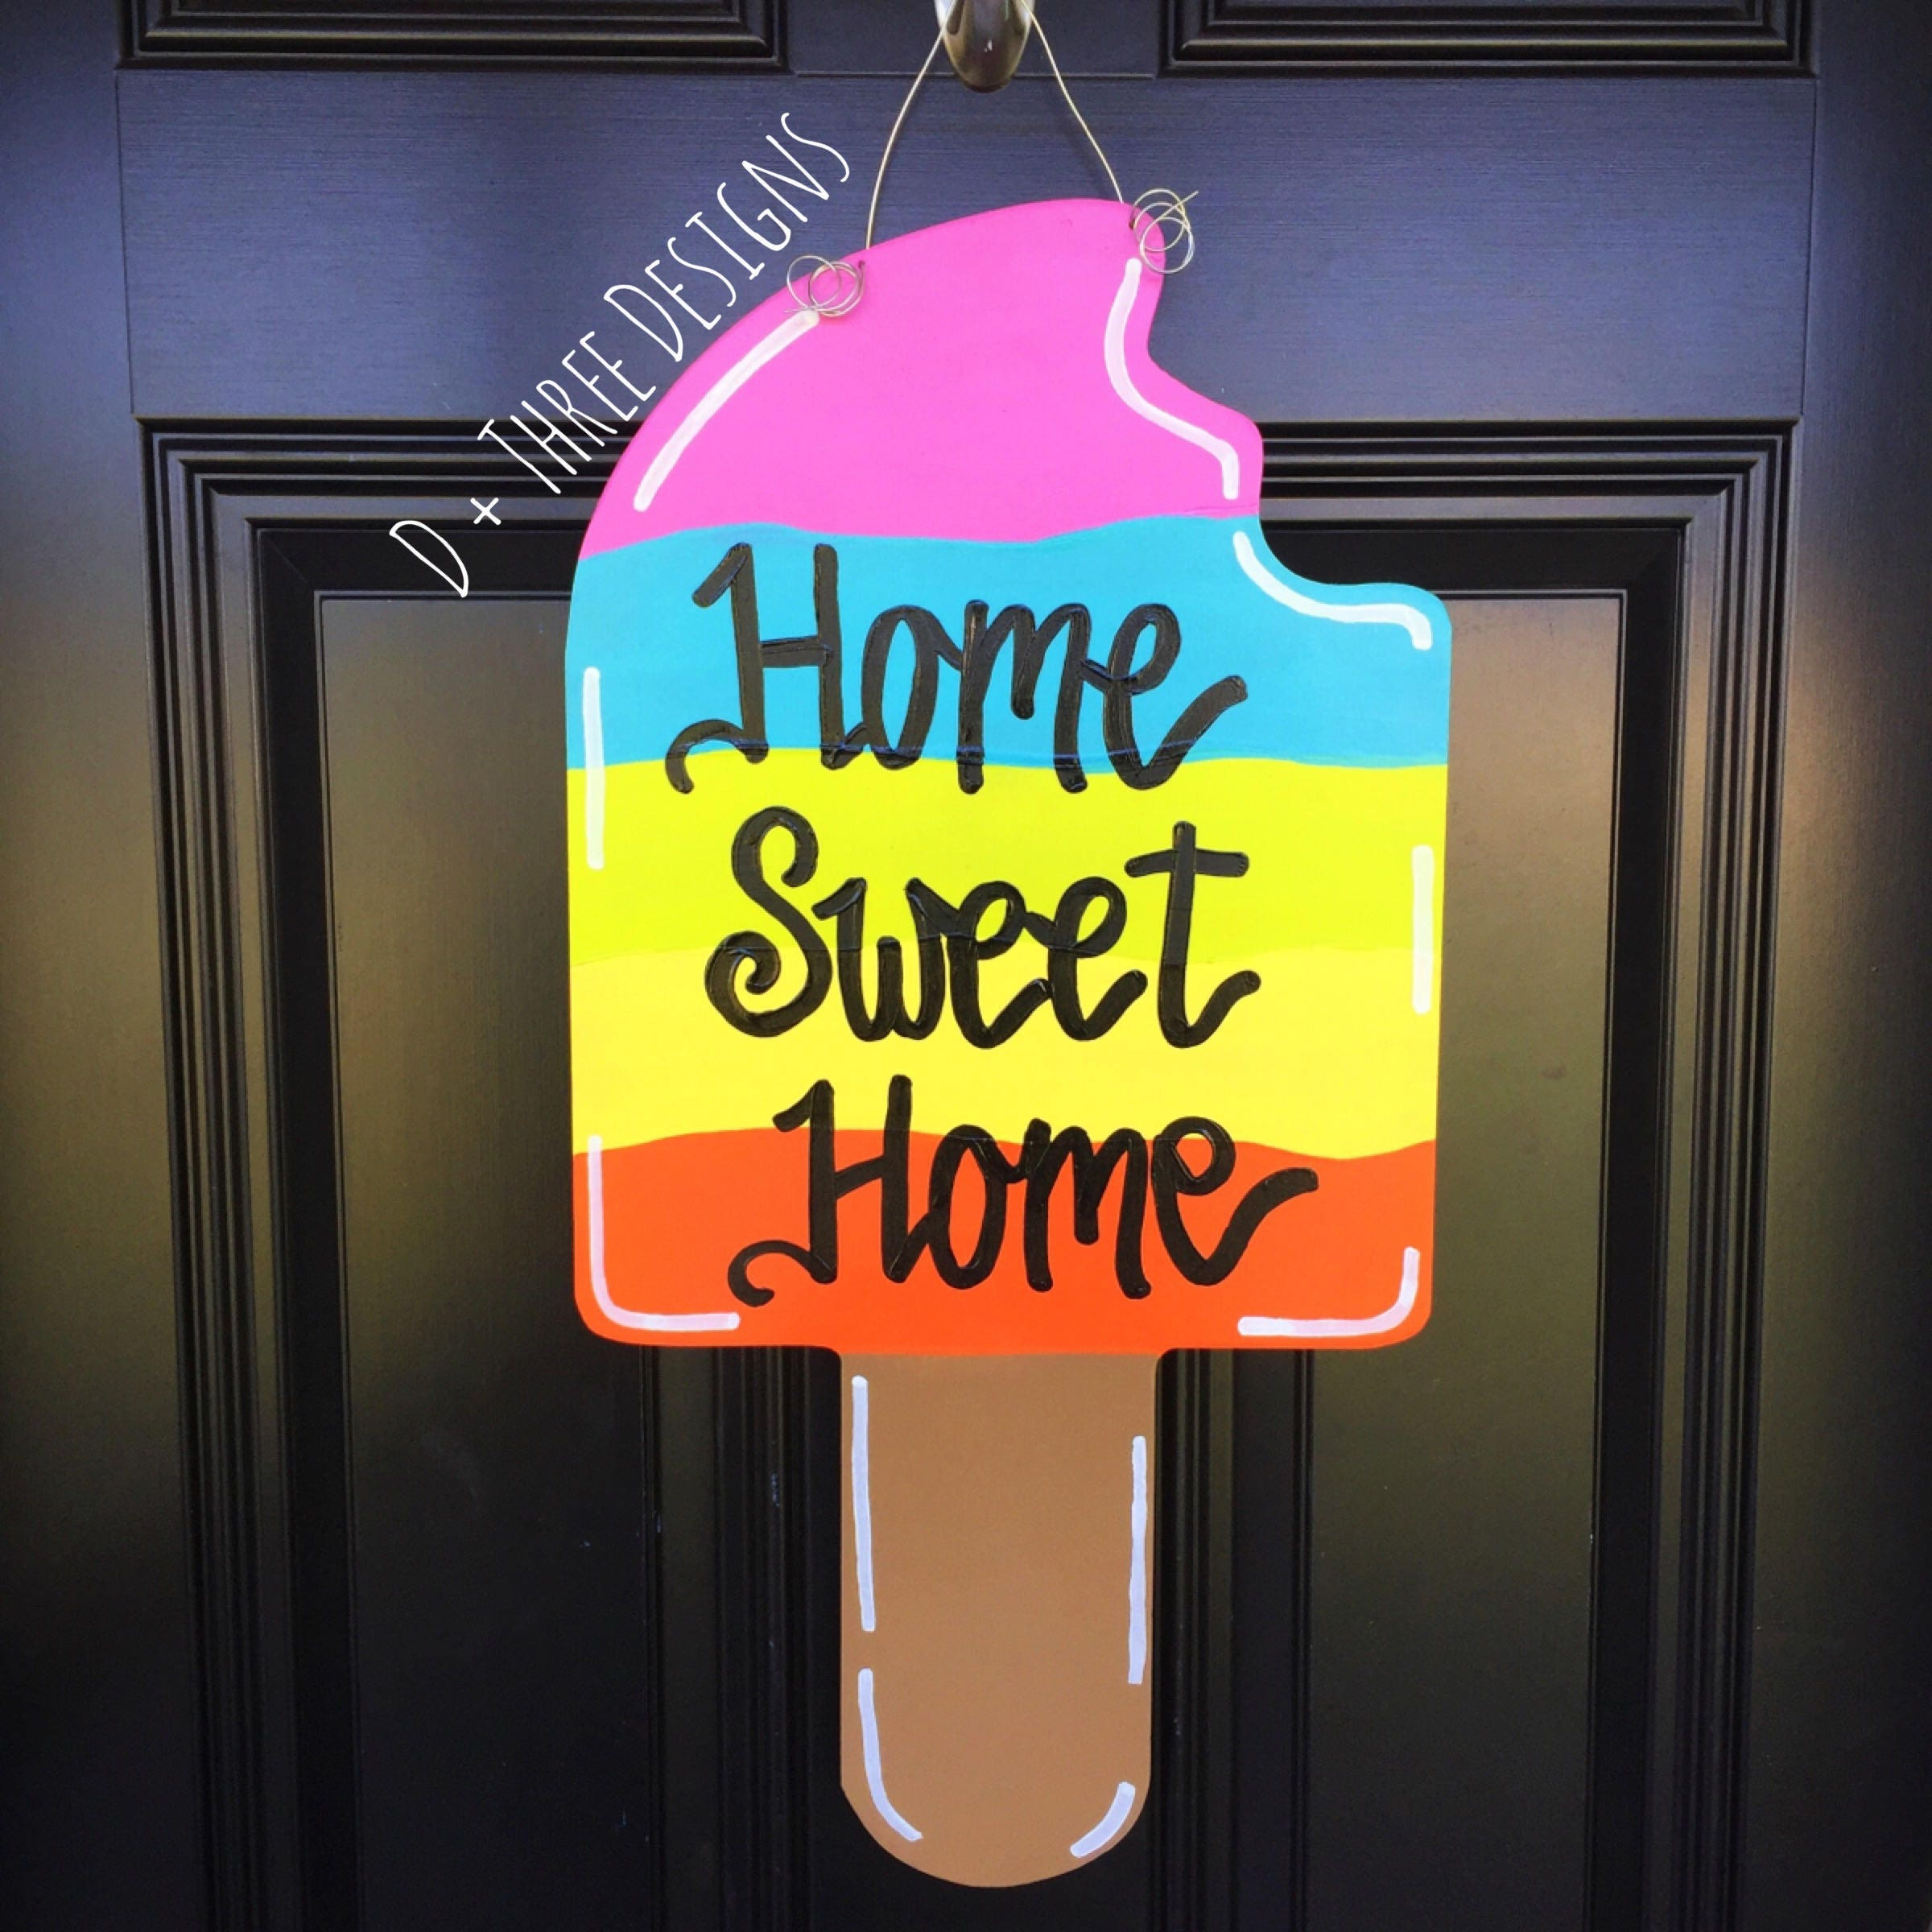 bbird hangers everything online free door hanger bluebird s printable en rosie activities